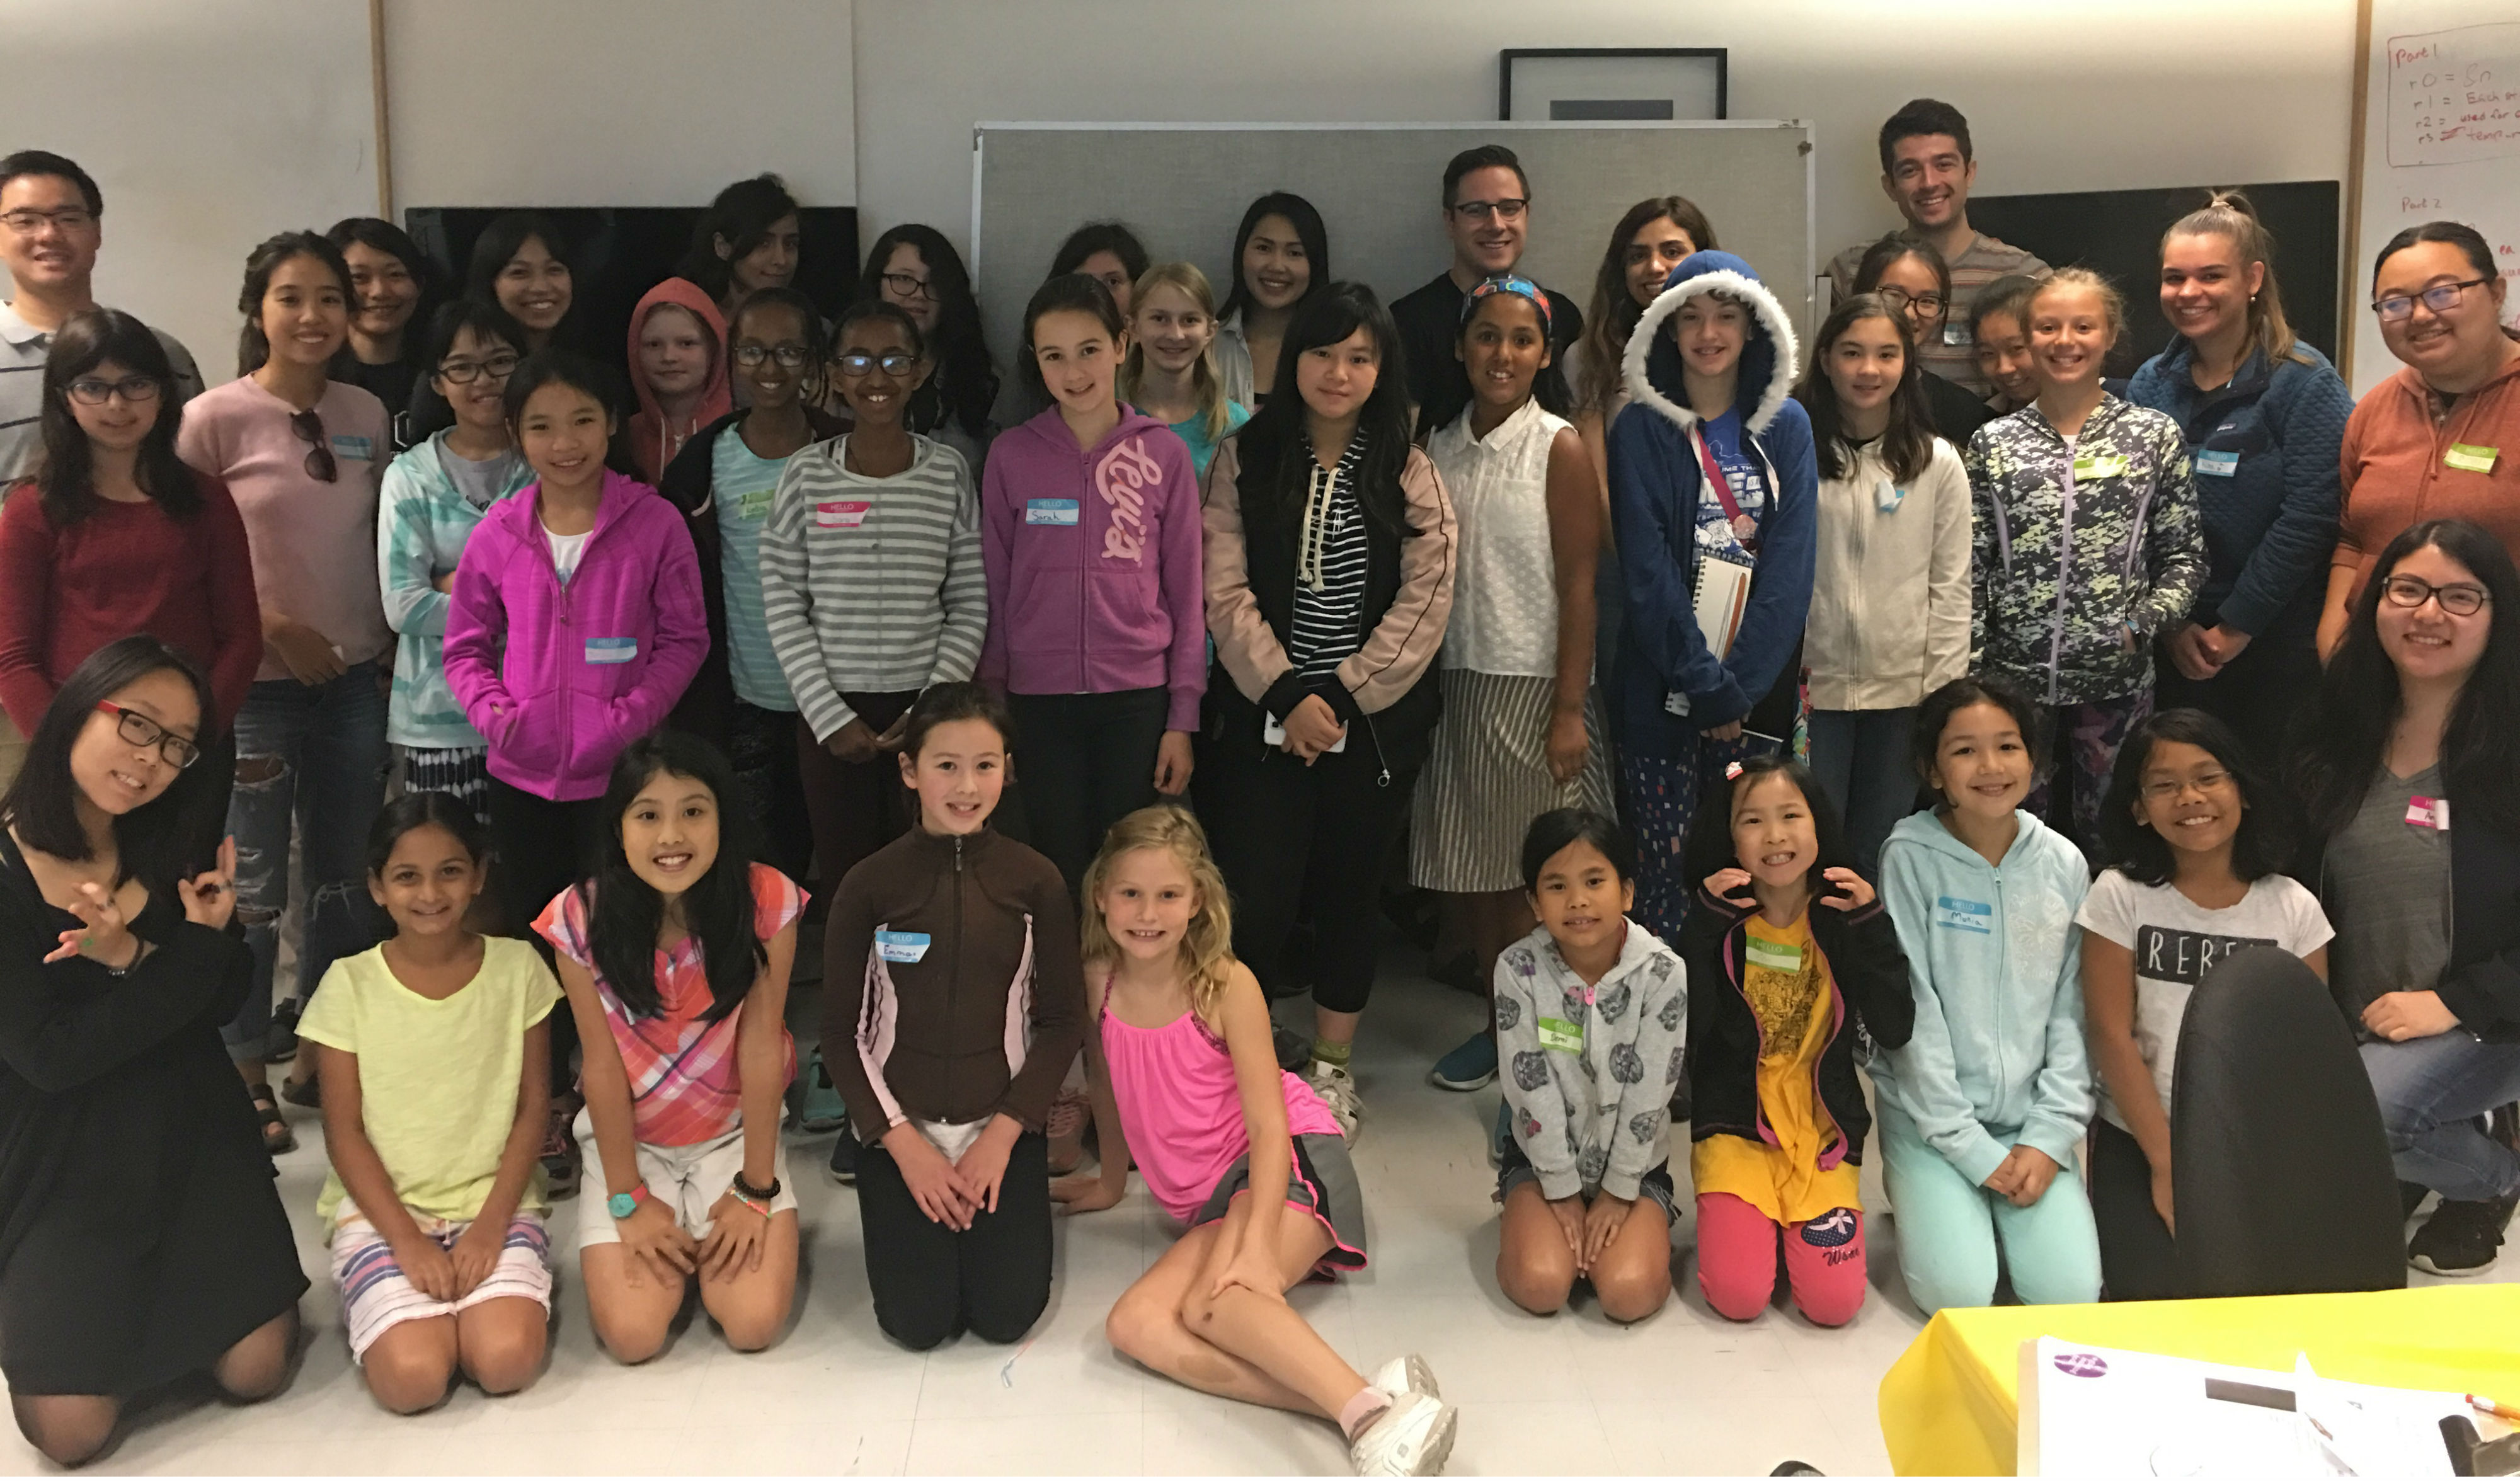 Vancouver's Girls Summer Webmaking Camp